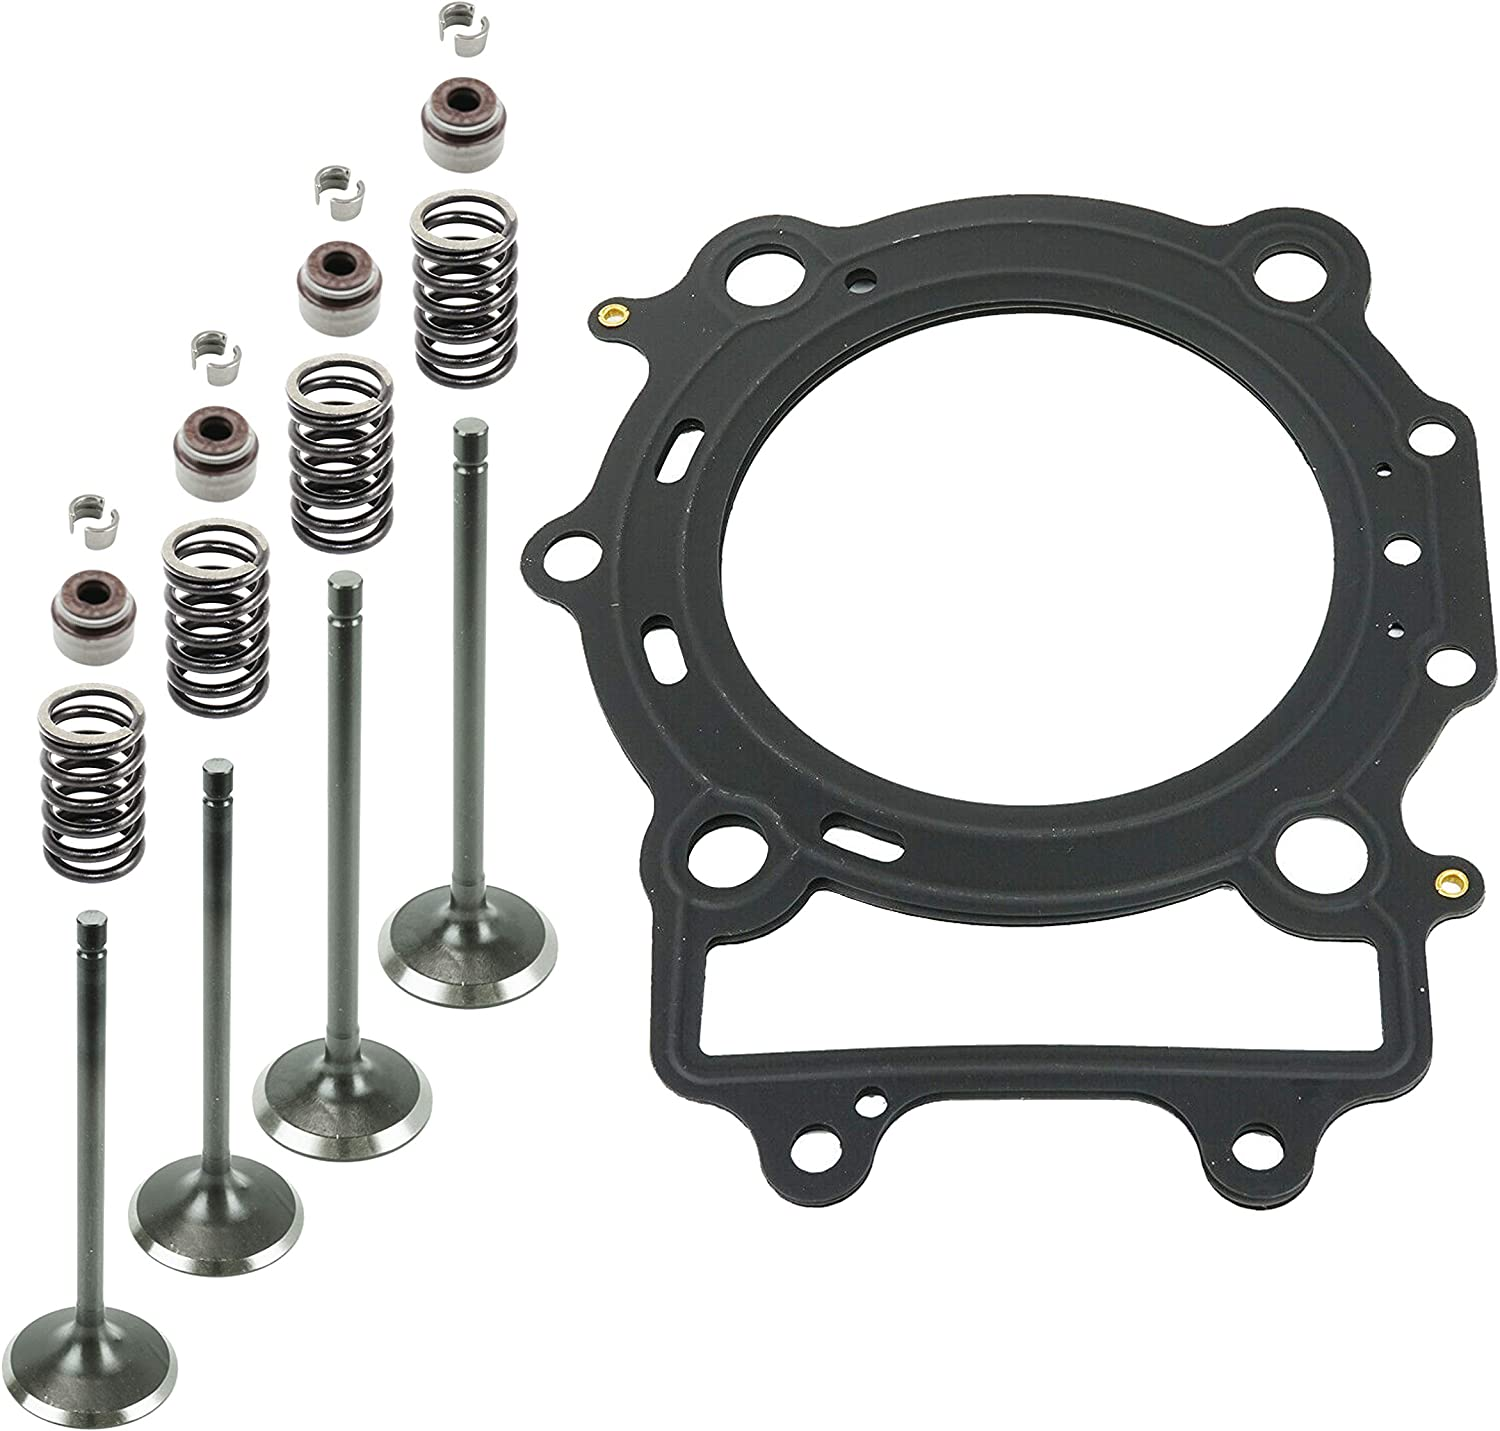 Caltric Cylinder Head Valve Gasket Kit Compatible With Arctic Cat 500 4X4 H1 TRV XT 2009 2010 2013